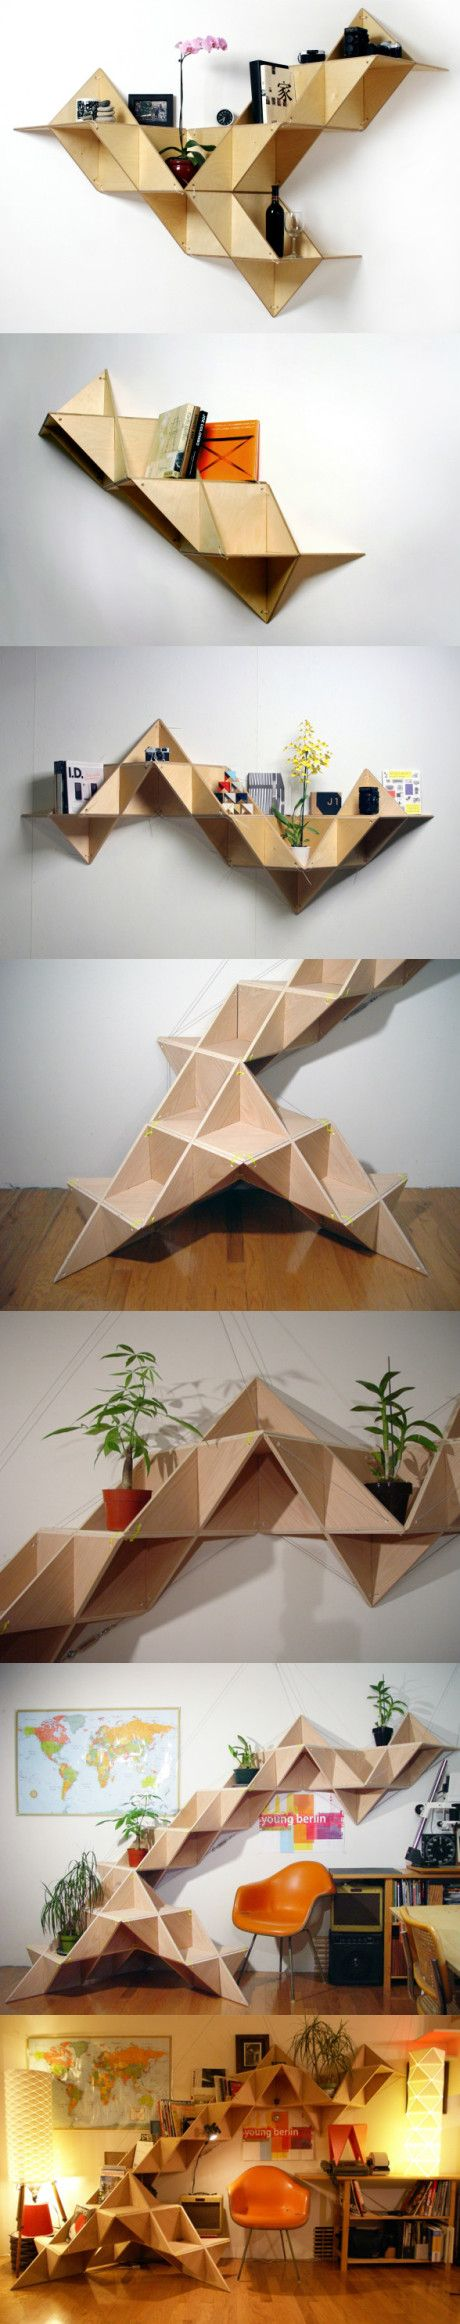 extensible triangle wall shelf